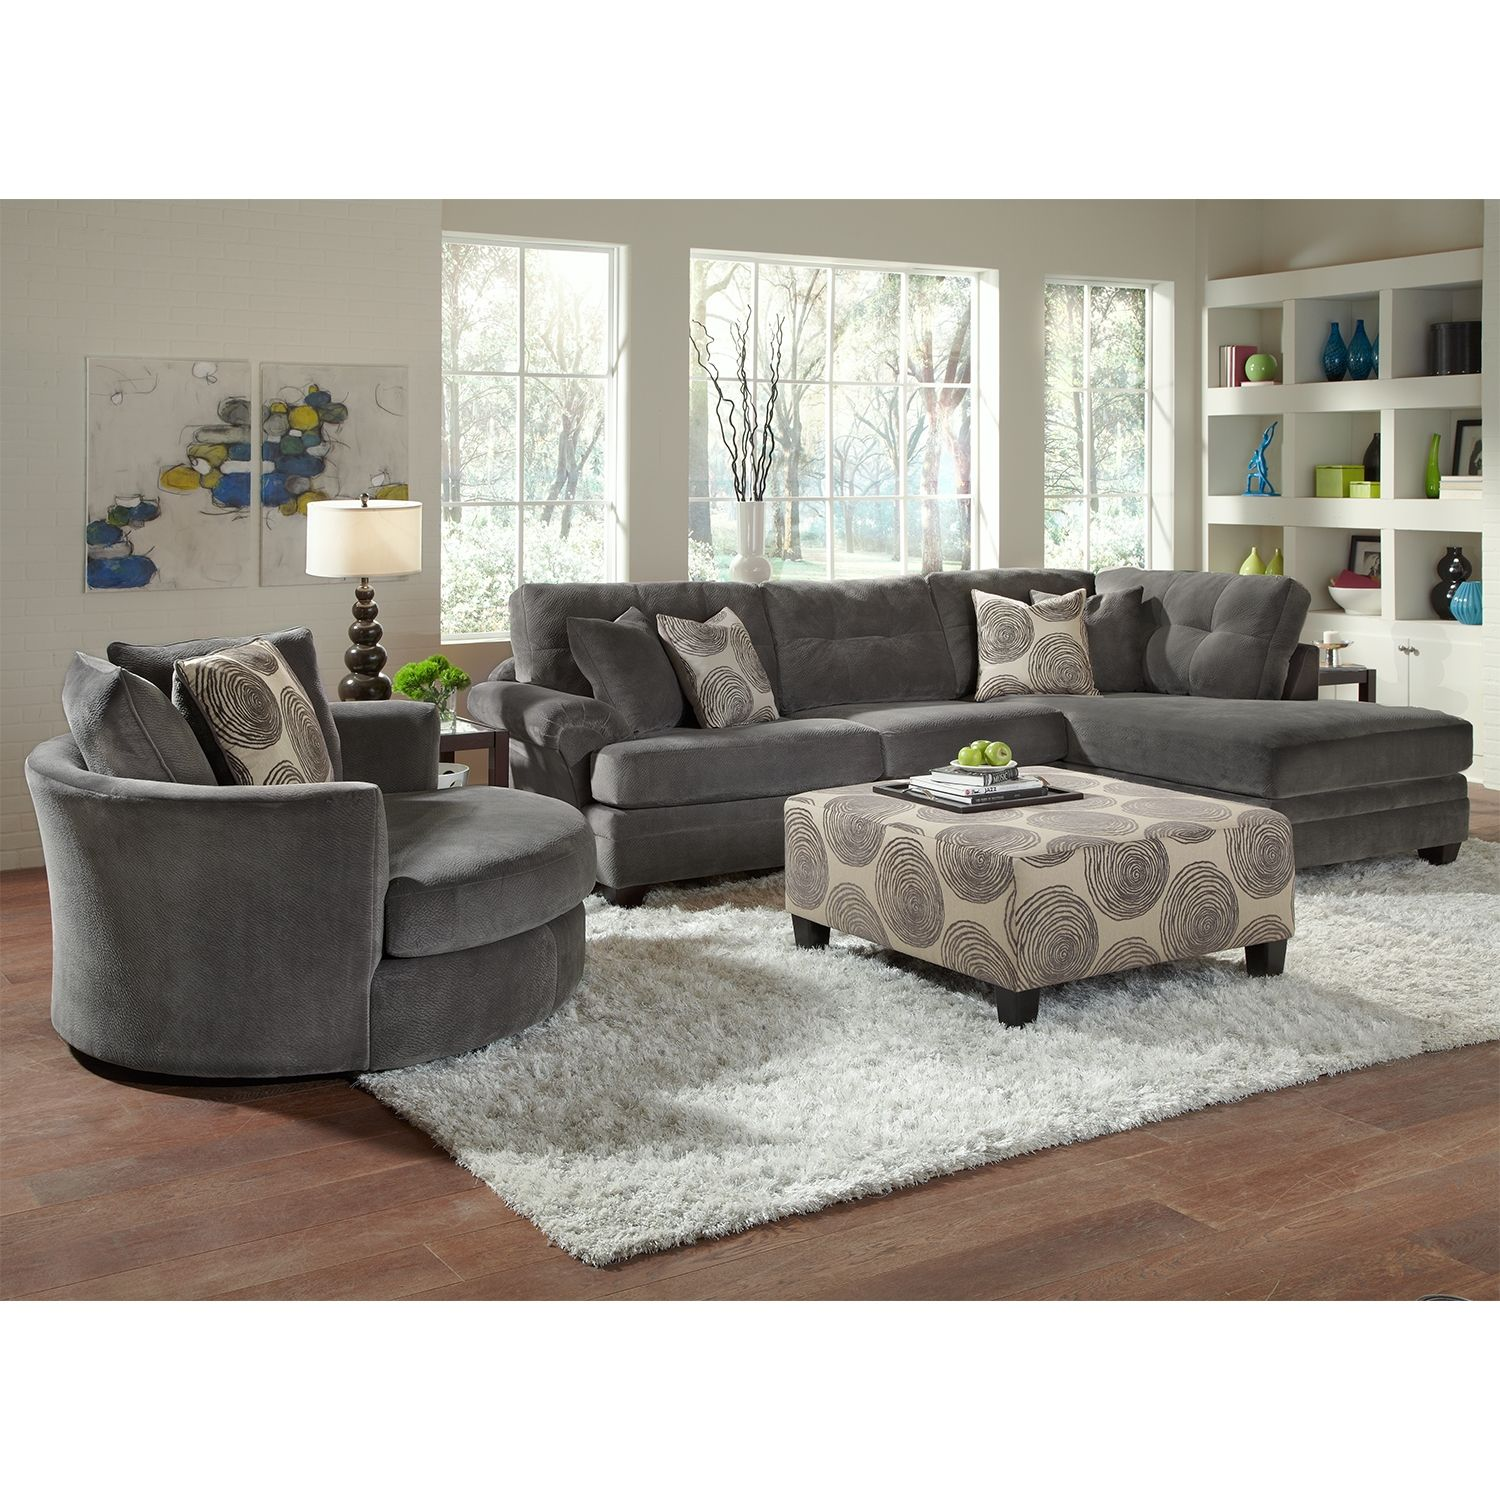 Home City Furniture Set Decoration Enchanting Catalina Gray Upholstery 2 Pcsectional  Furniture  Home . Review